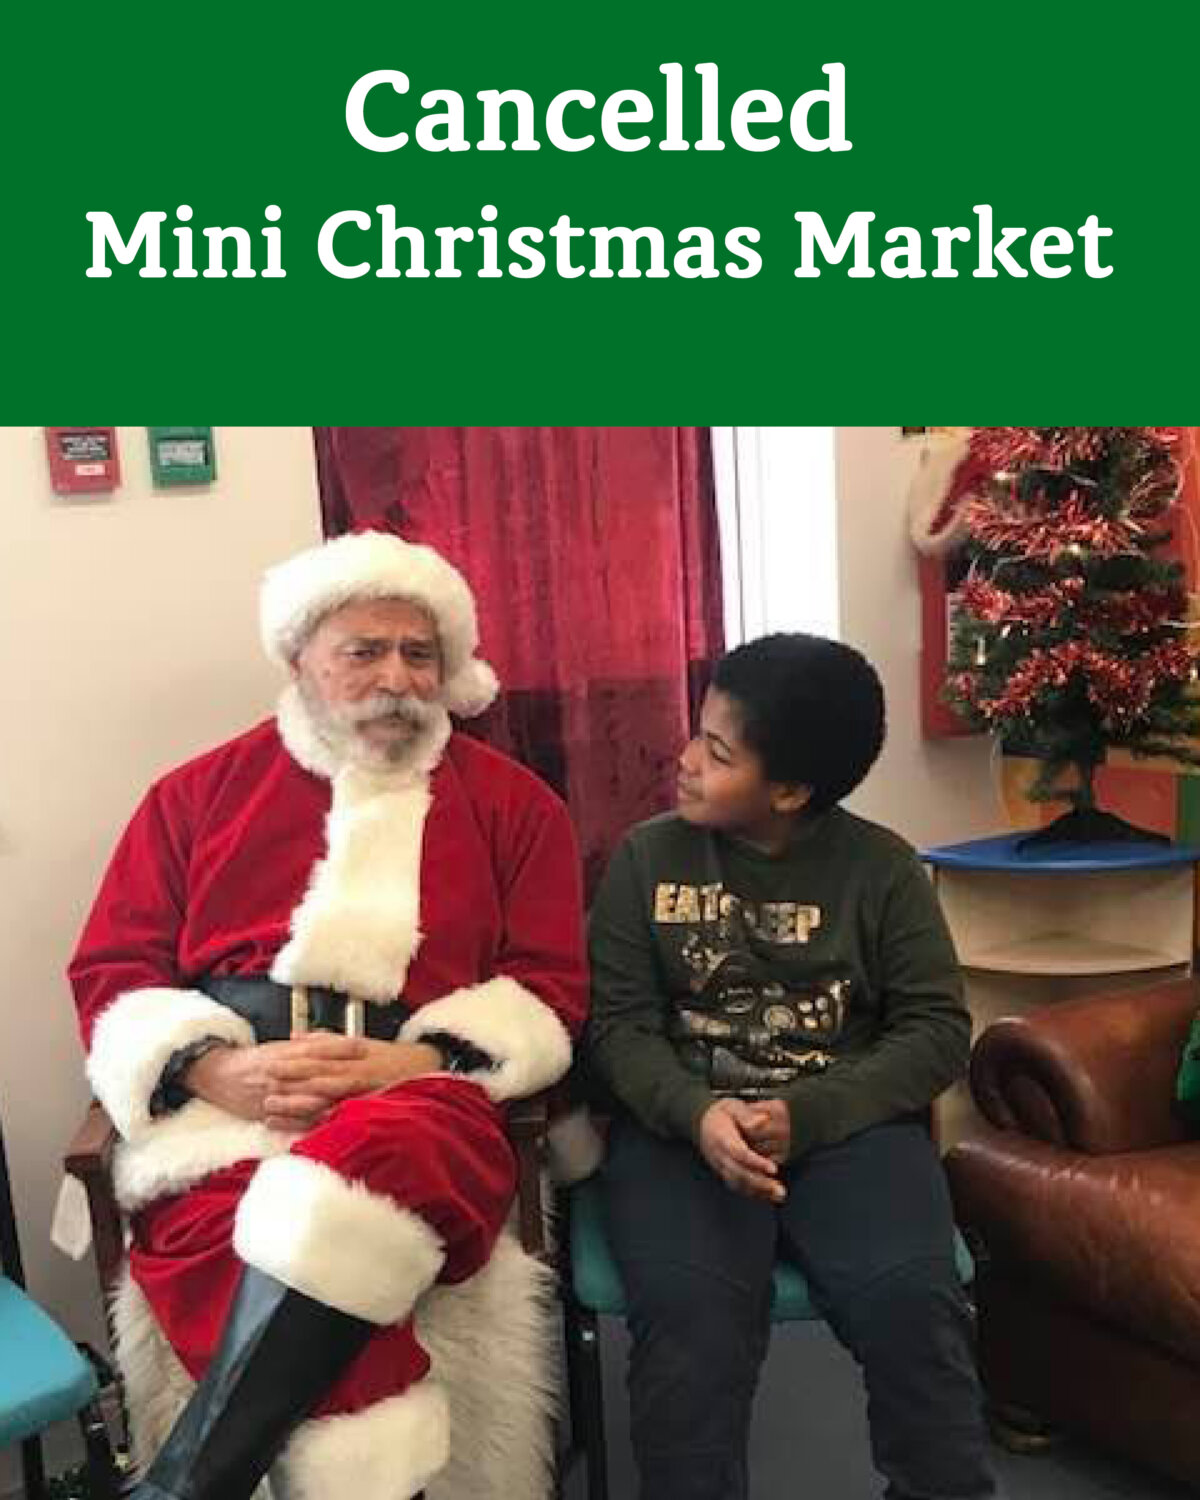 Mini Christmas Market Cancelled